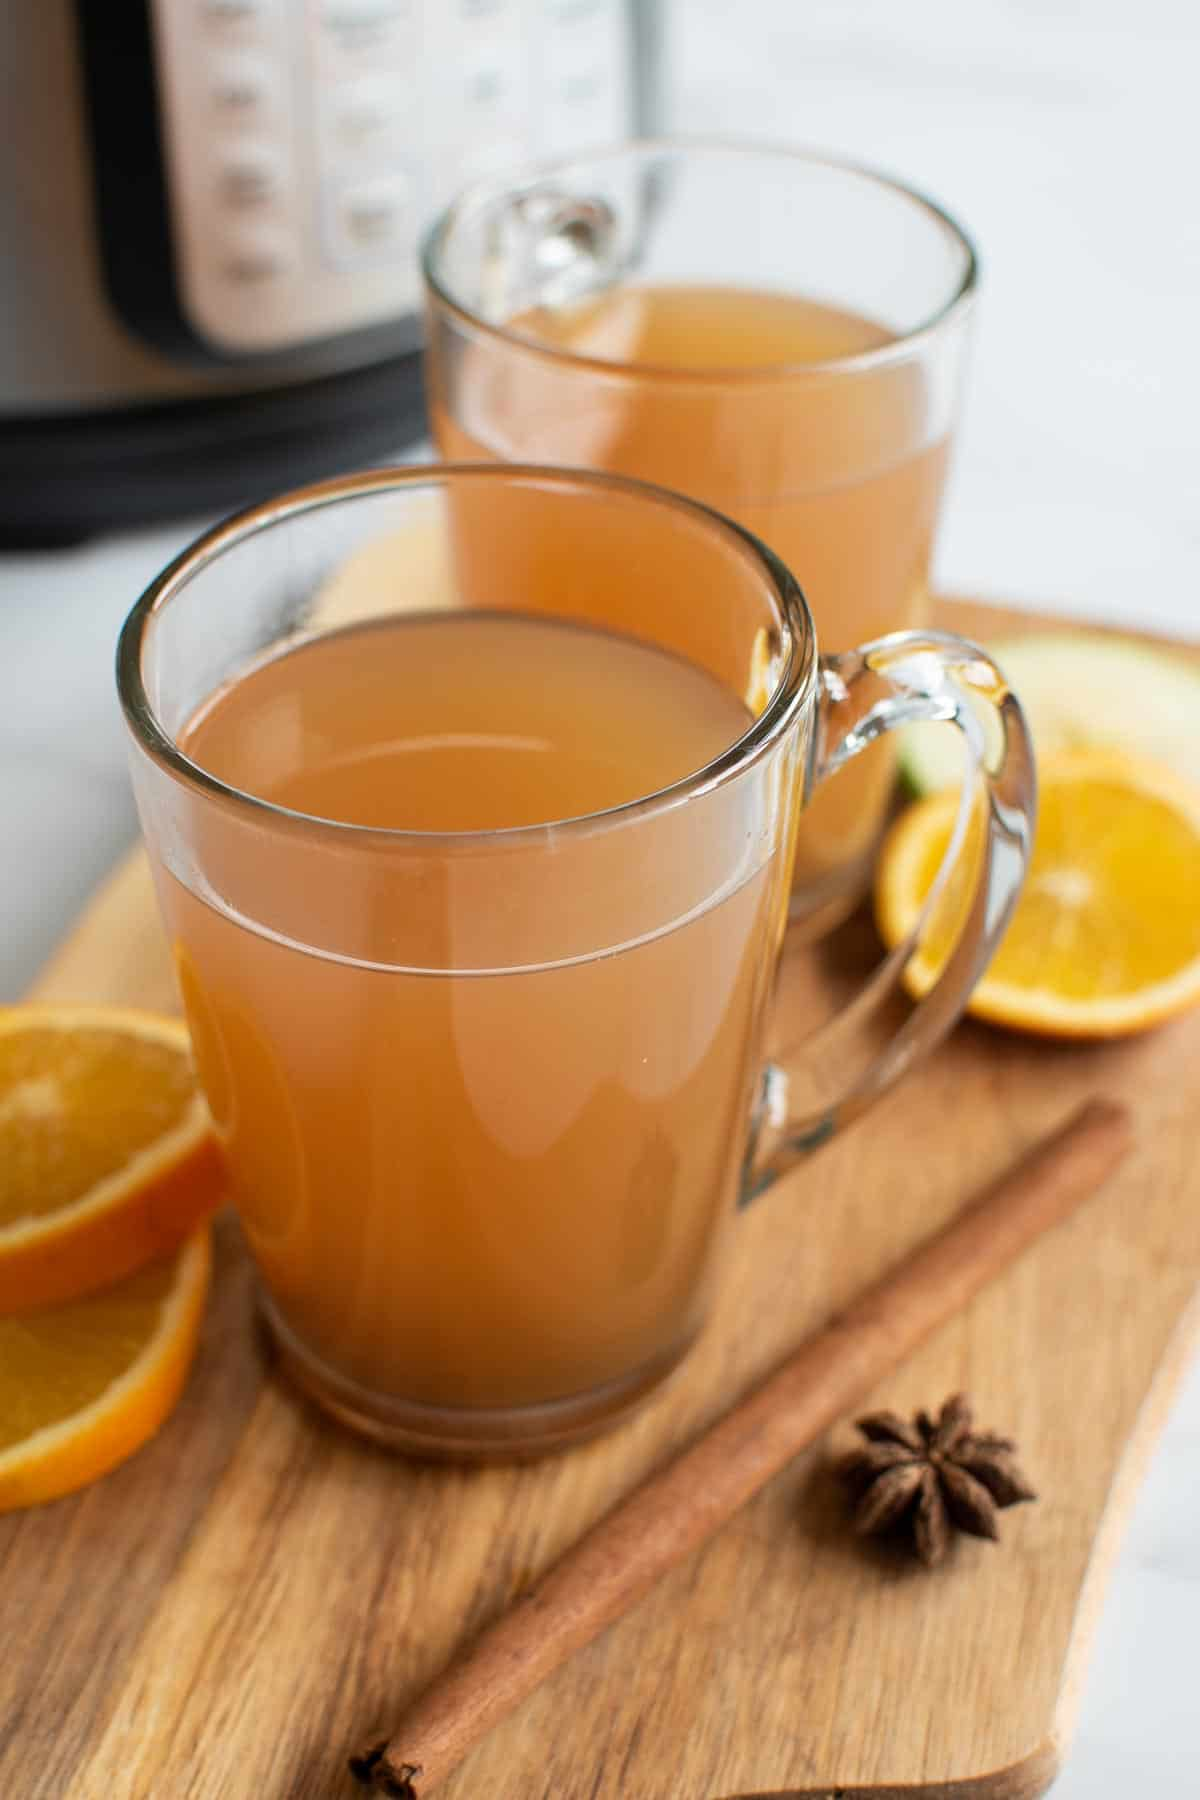 Two glasses of Instant Pot mulled apple cider.